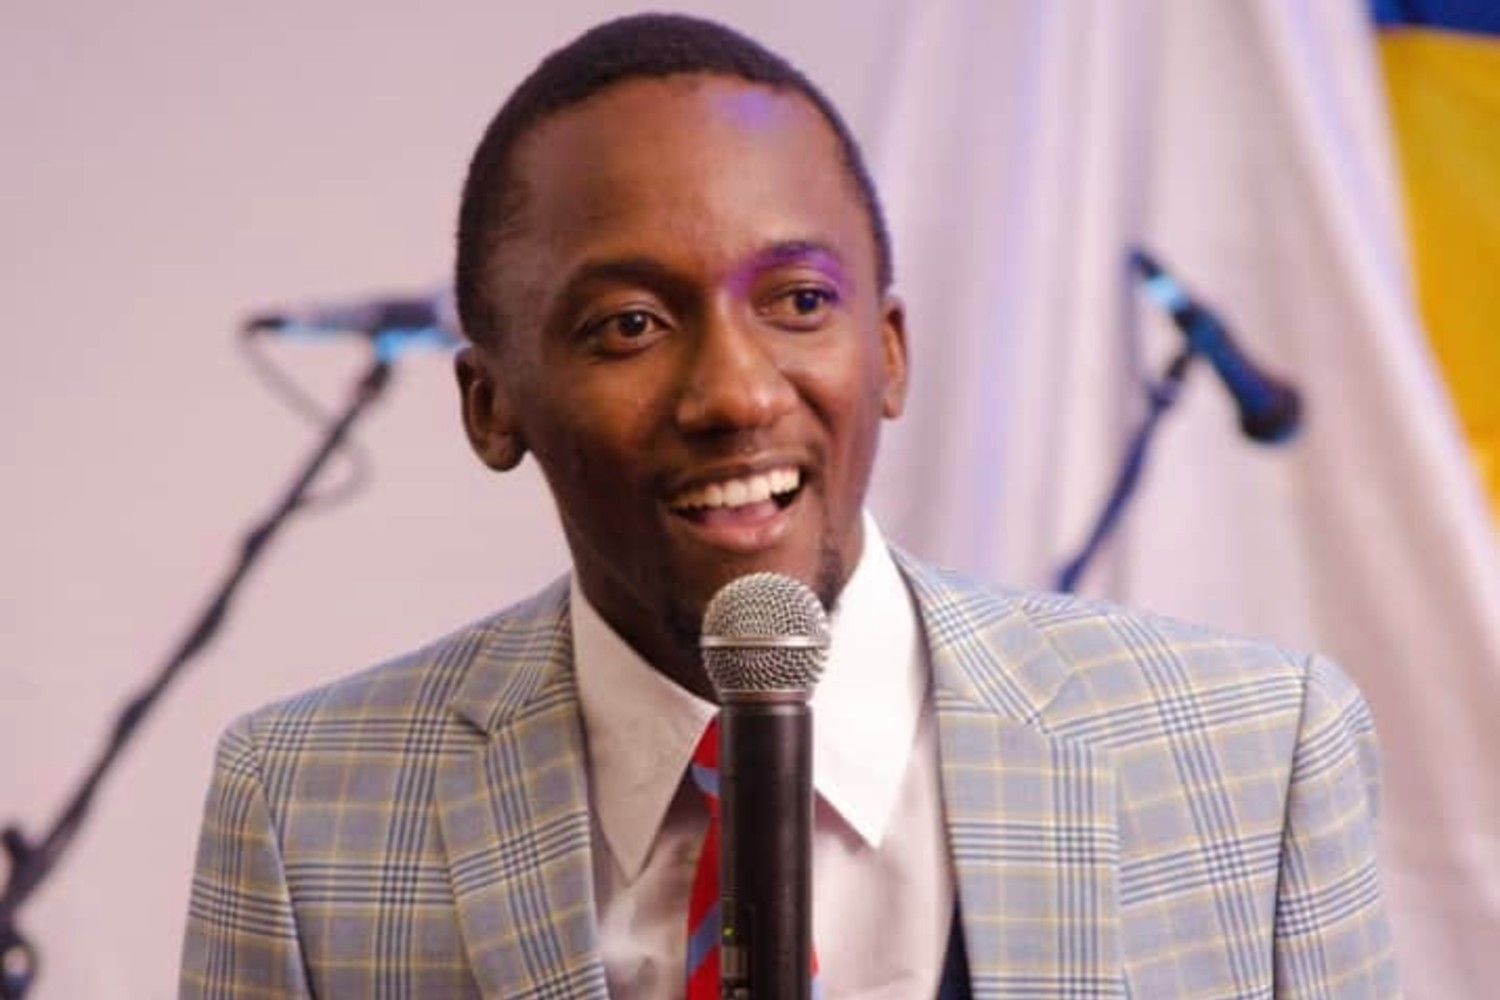 Prophet Embarrassed By Baby Mama During Wedding To Pregnant Fiancée!